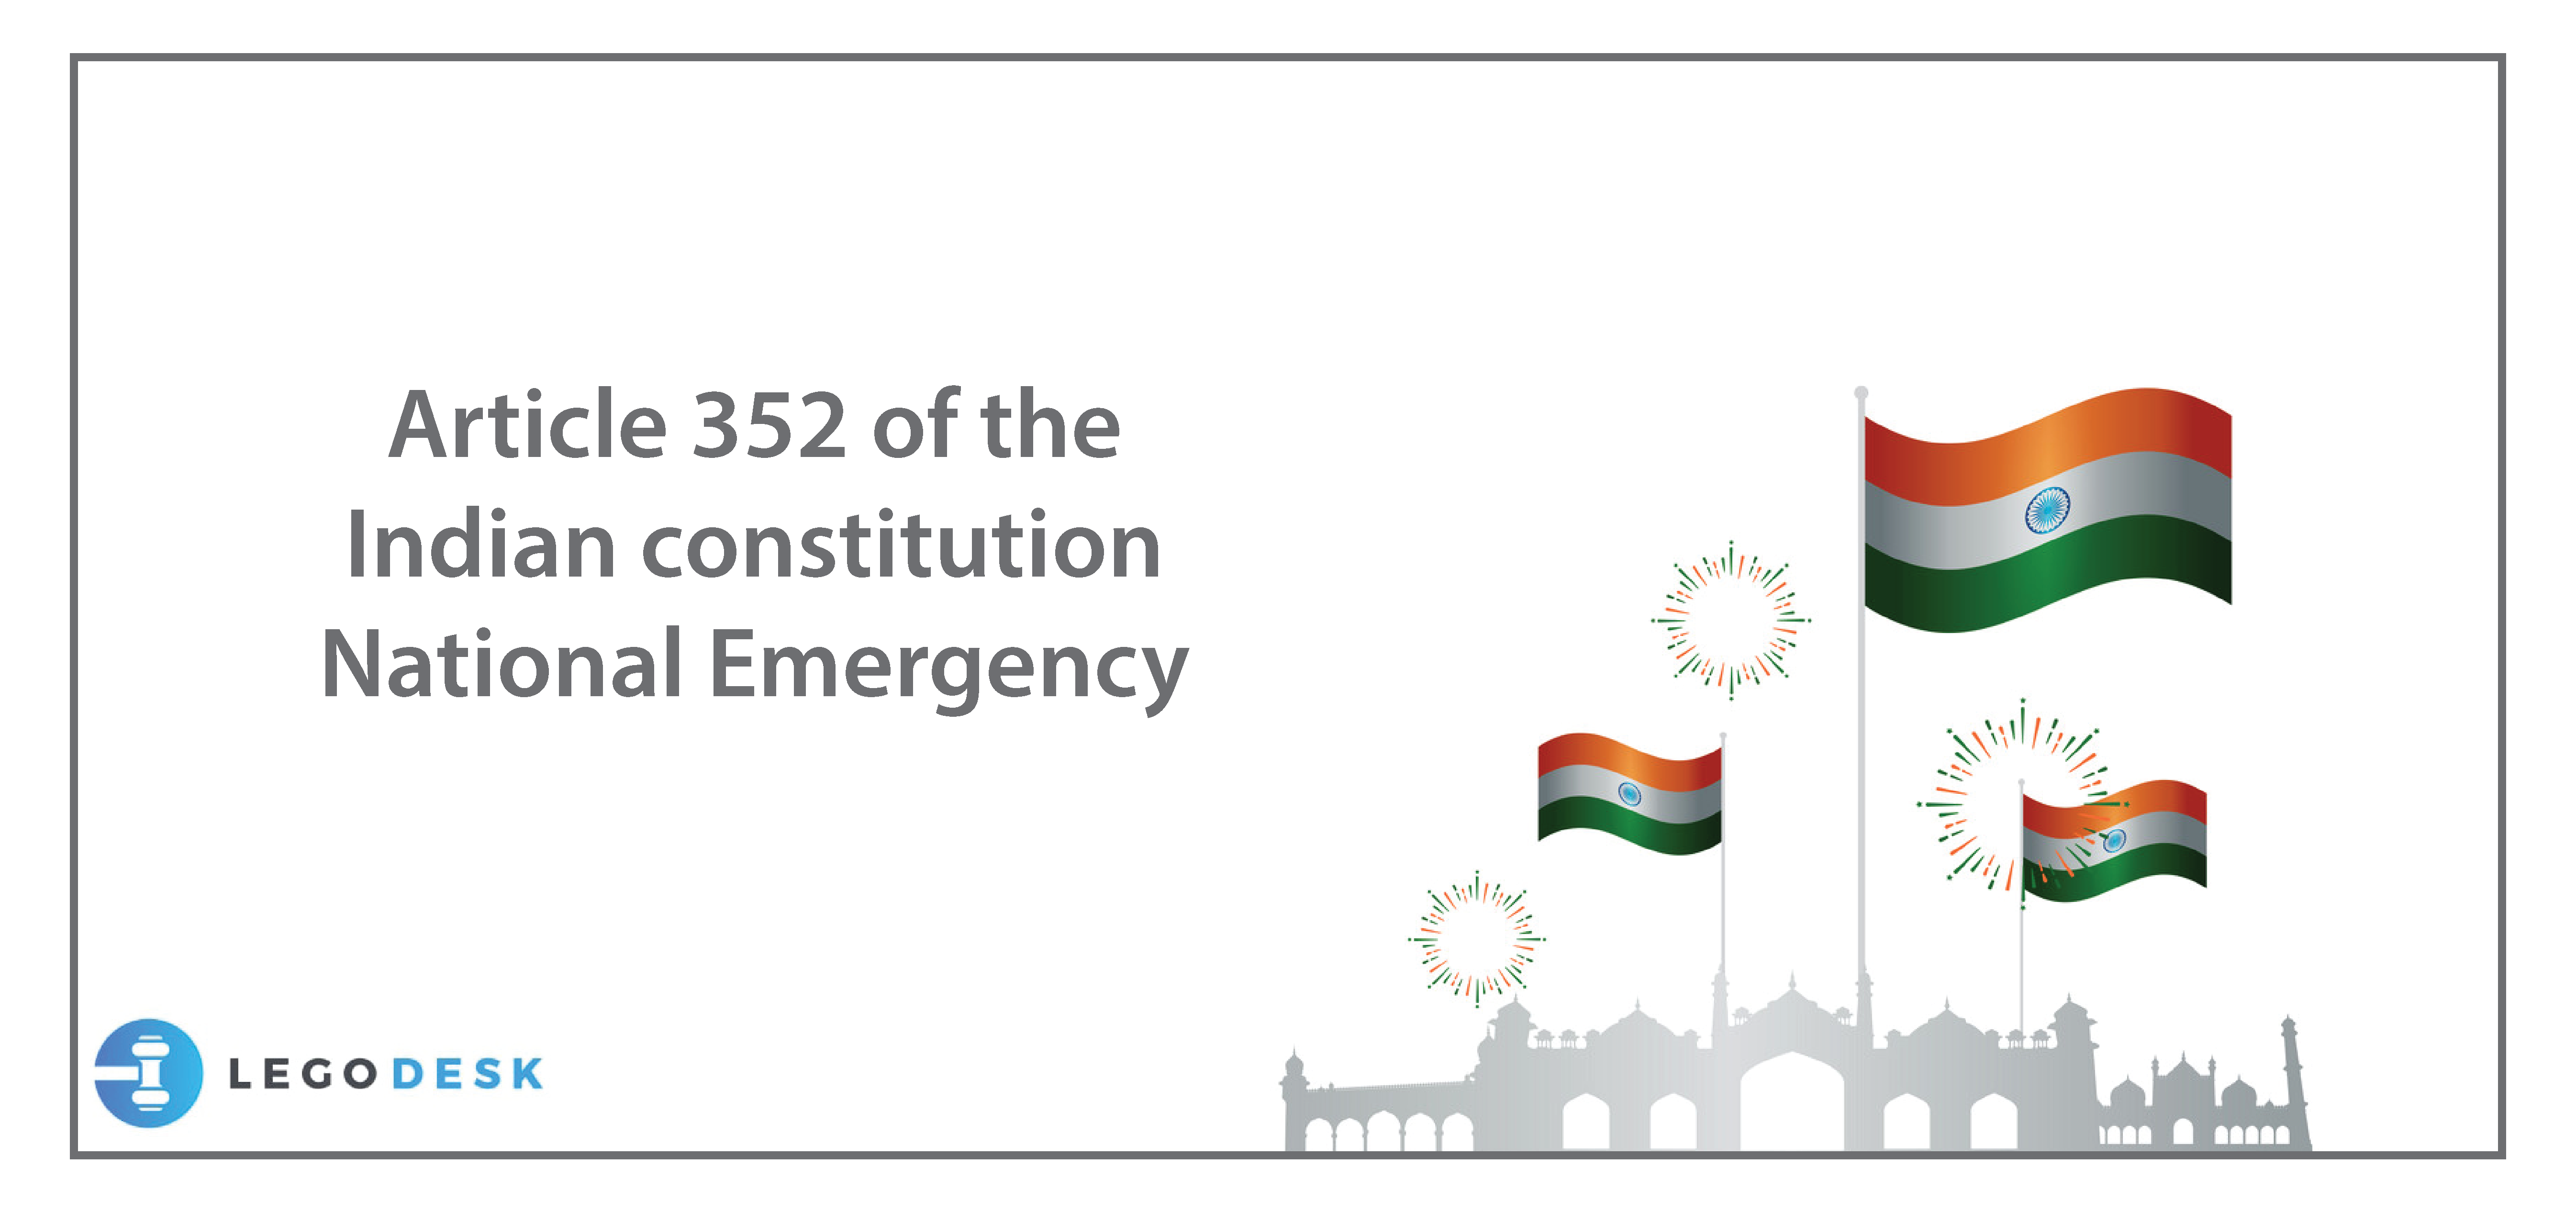 Article 352 of the Indian Constitution Talks About National Emergency